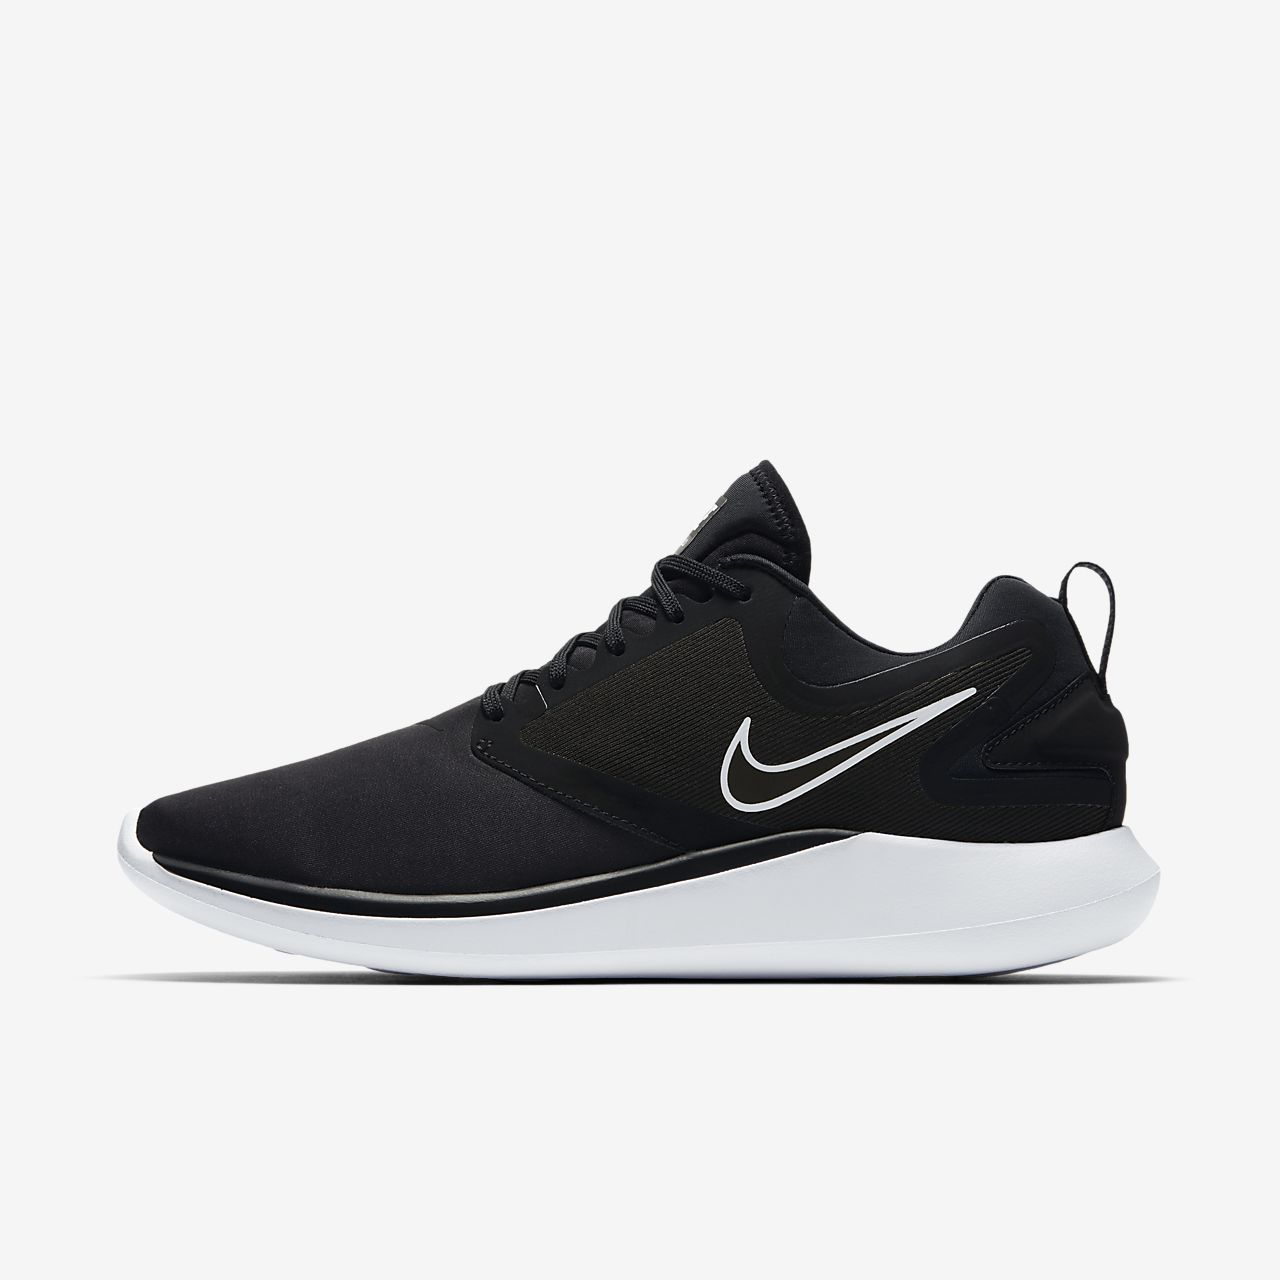 Nike Lunarsolo 2018 Black Running Shoes